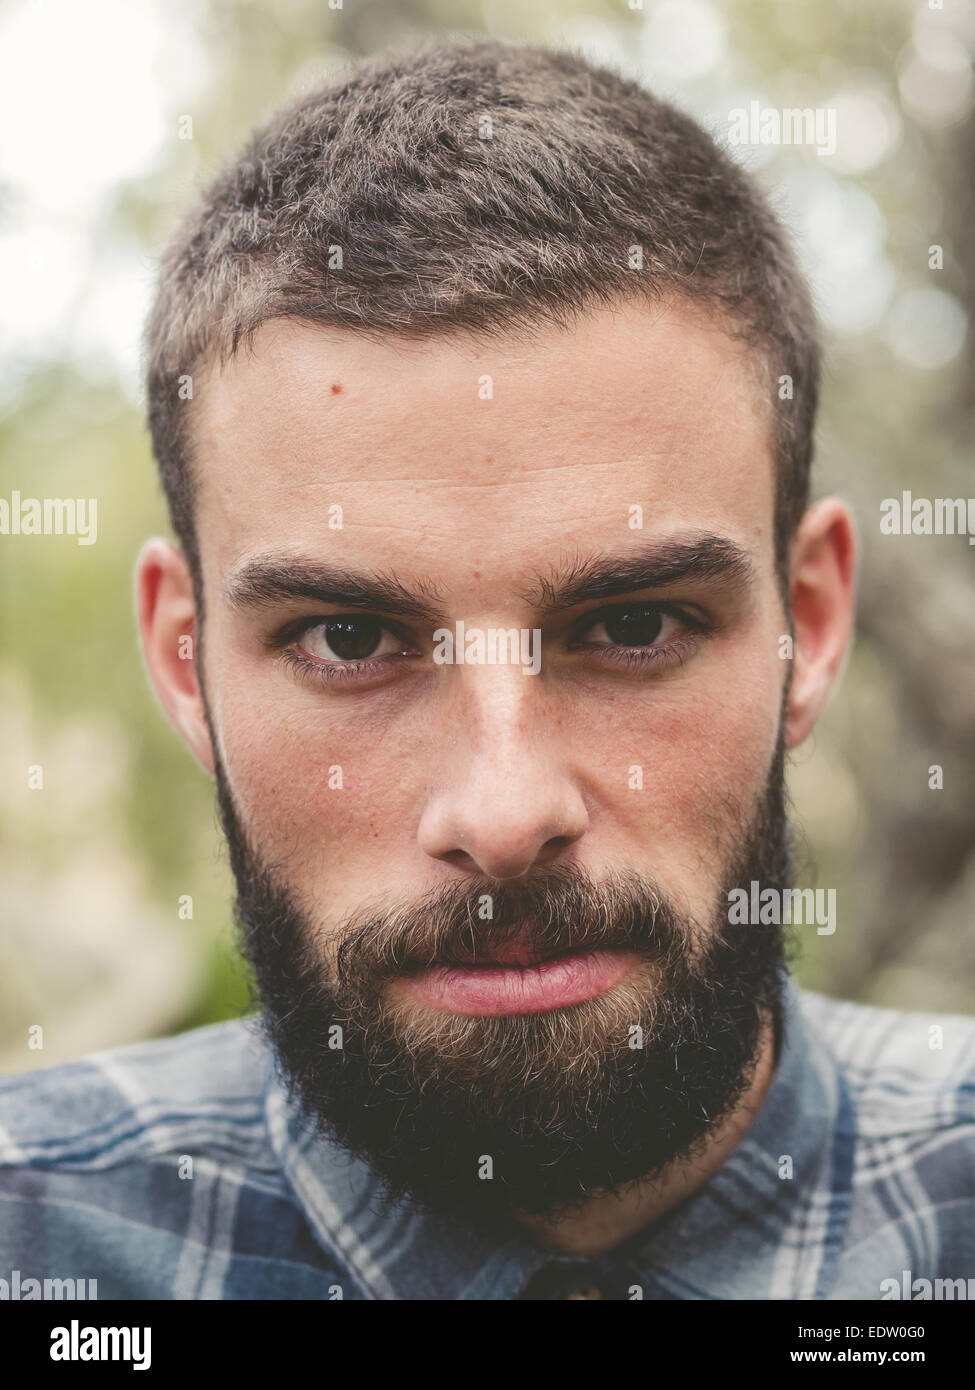 Hipster man portrait outdoors. Man is looking at camera. - Stock Image